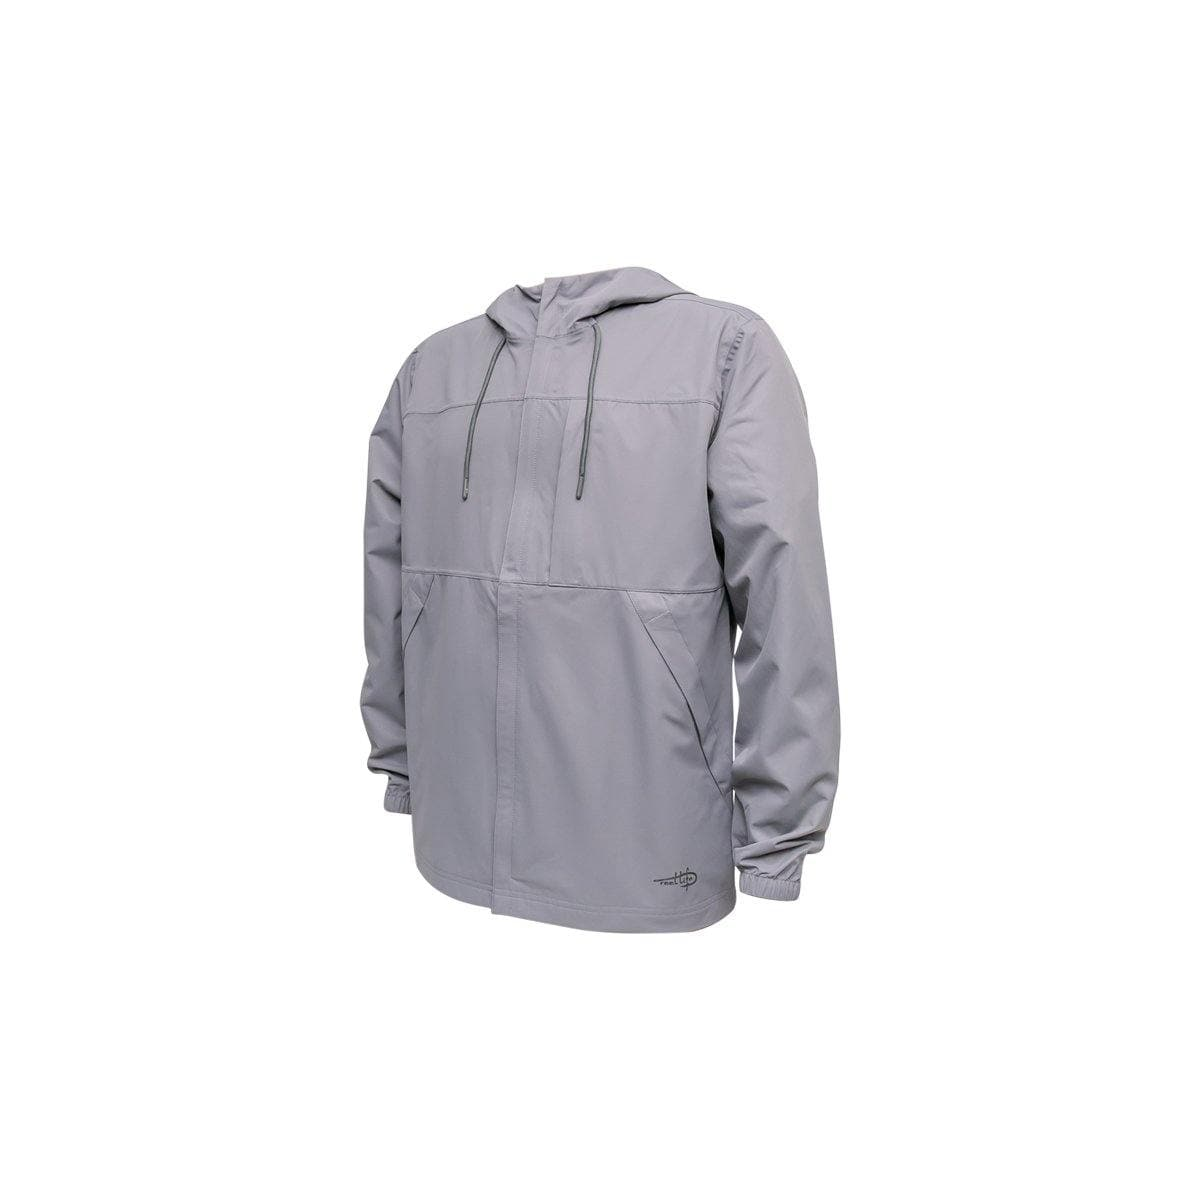 Reel Life Men's Shoreline Rain Jacket - Reel Life